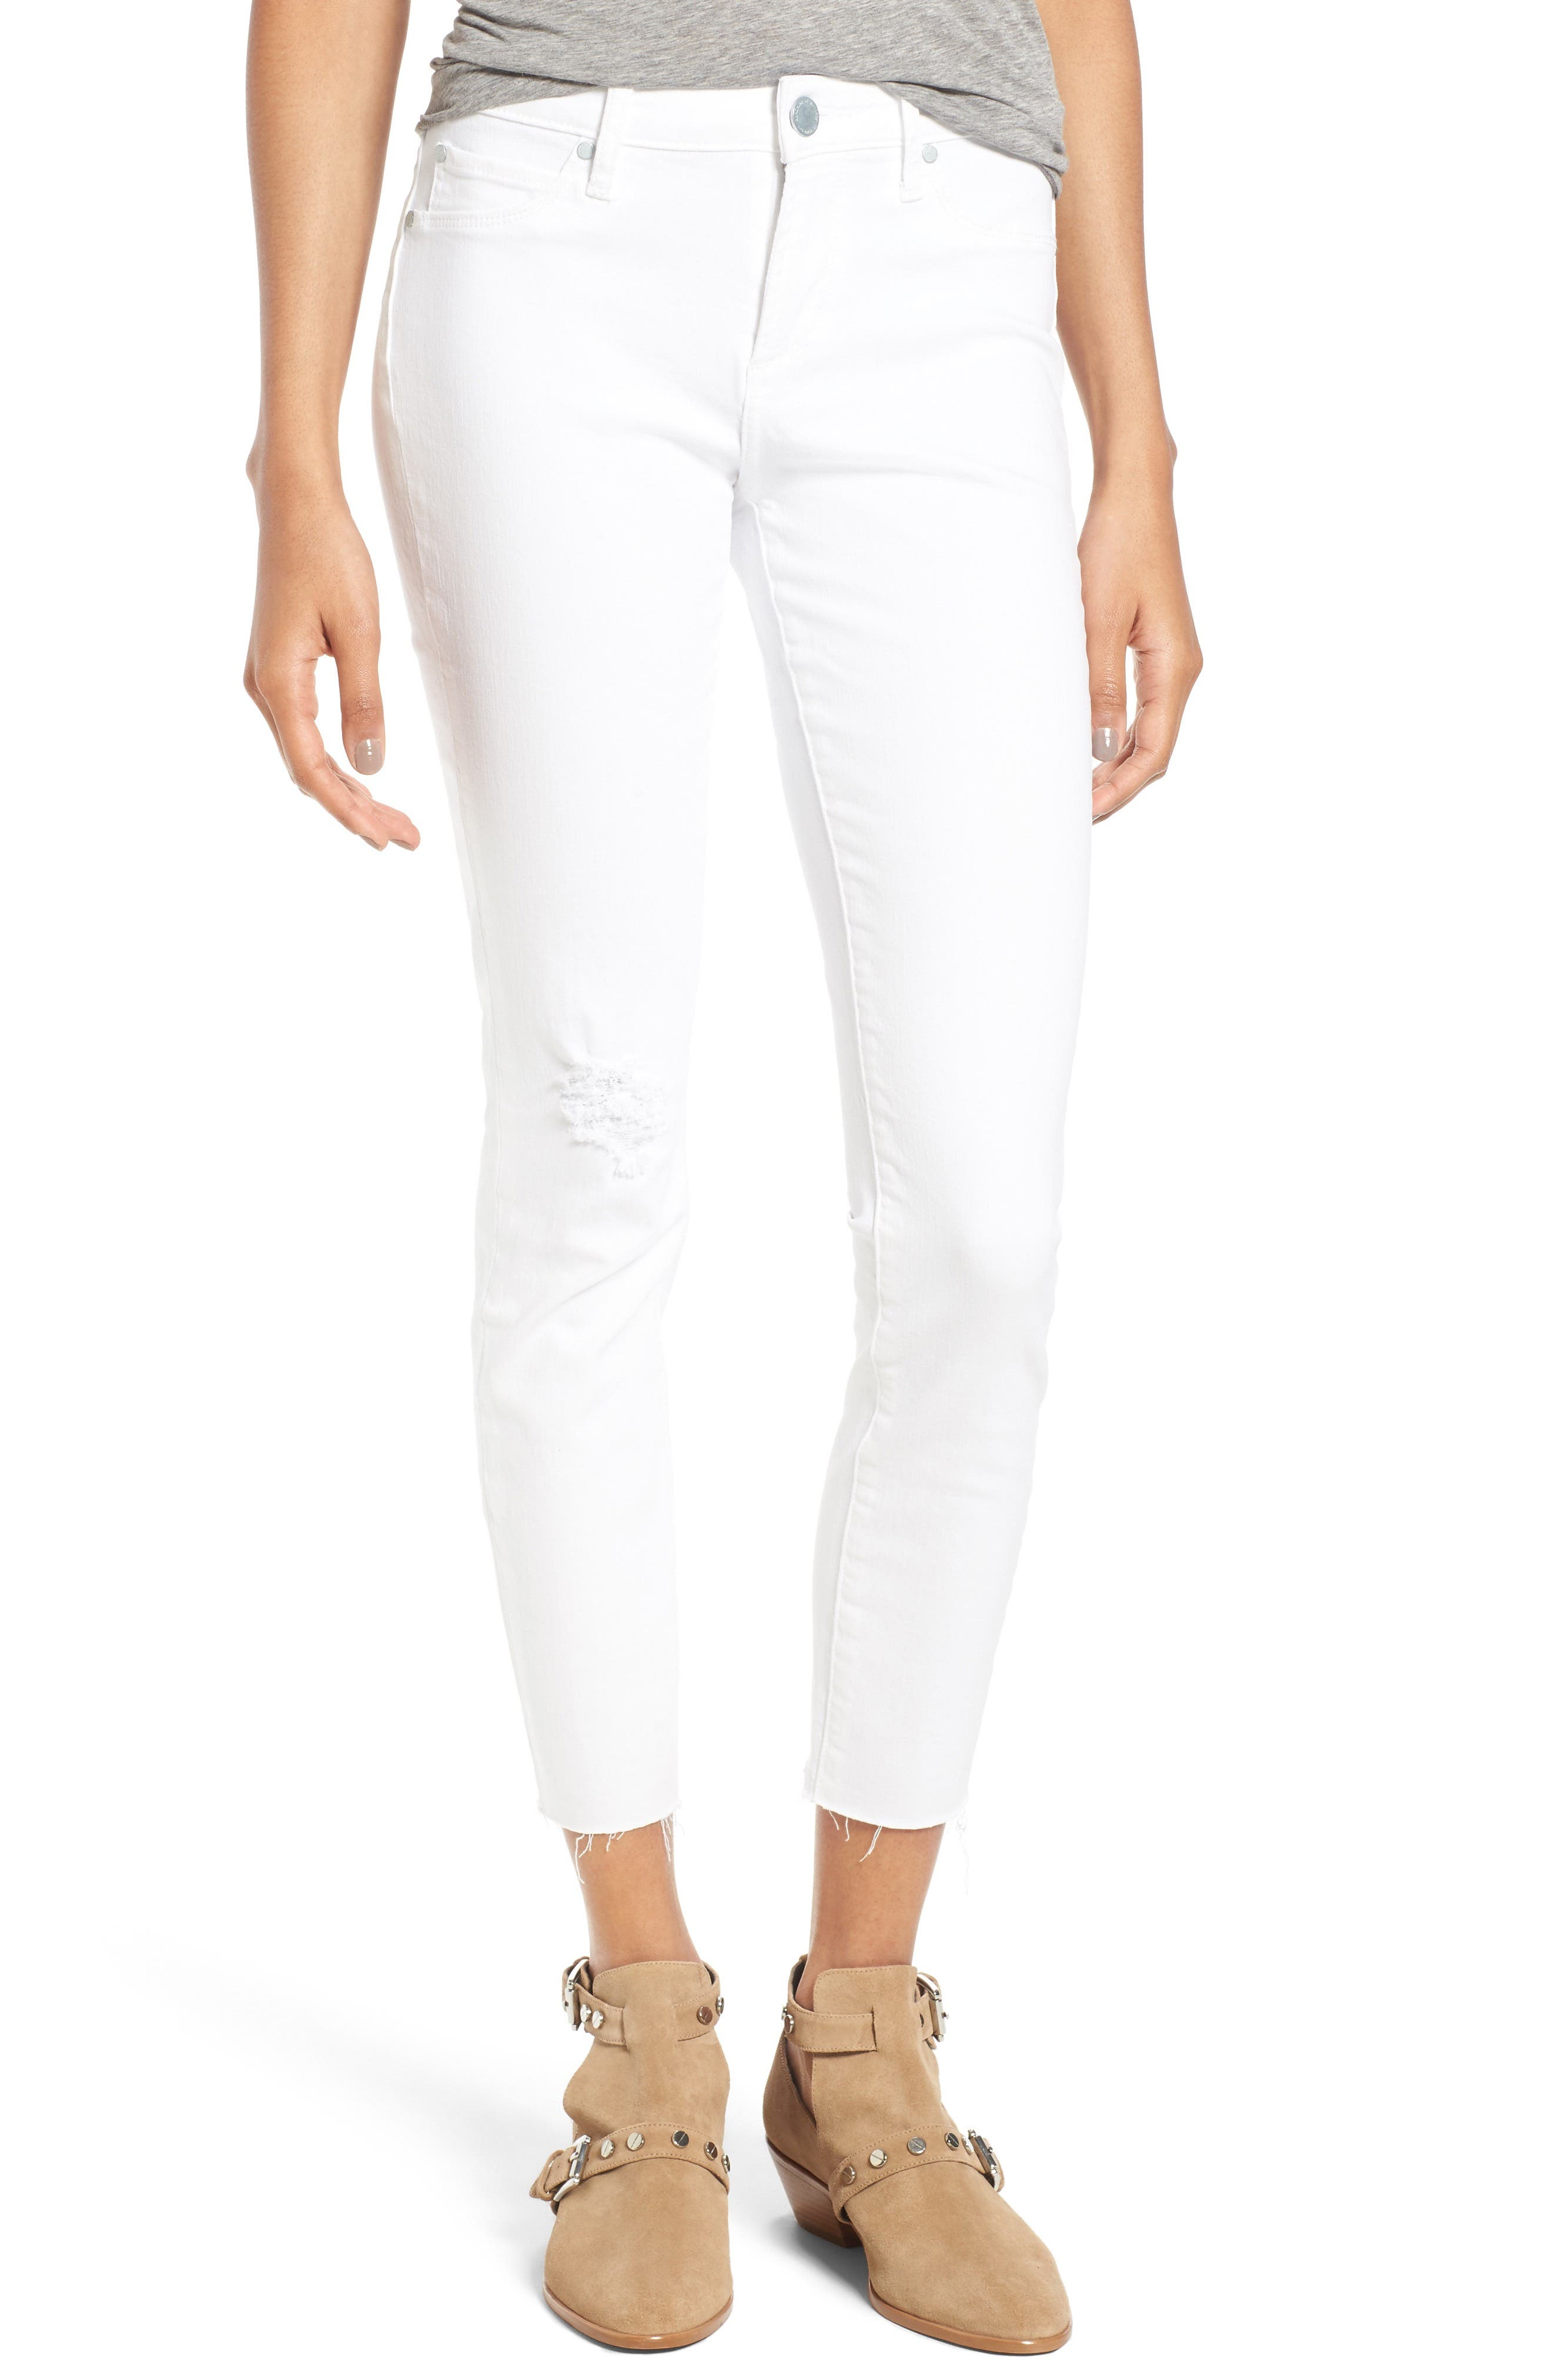 Carly Skinny Crop Jeans,                         Main,                         color, Whiteout